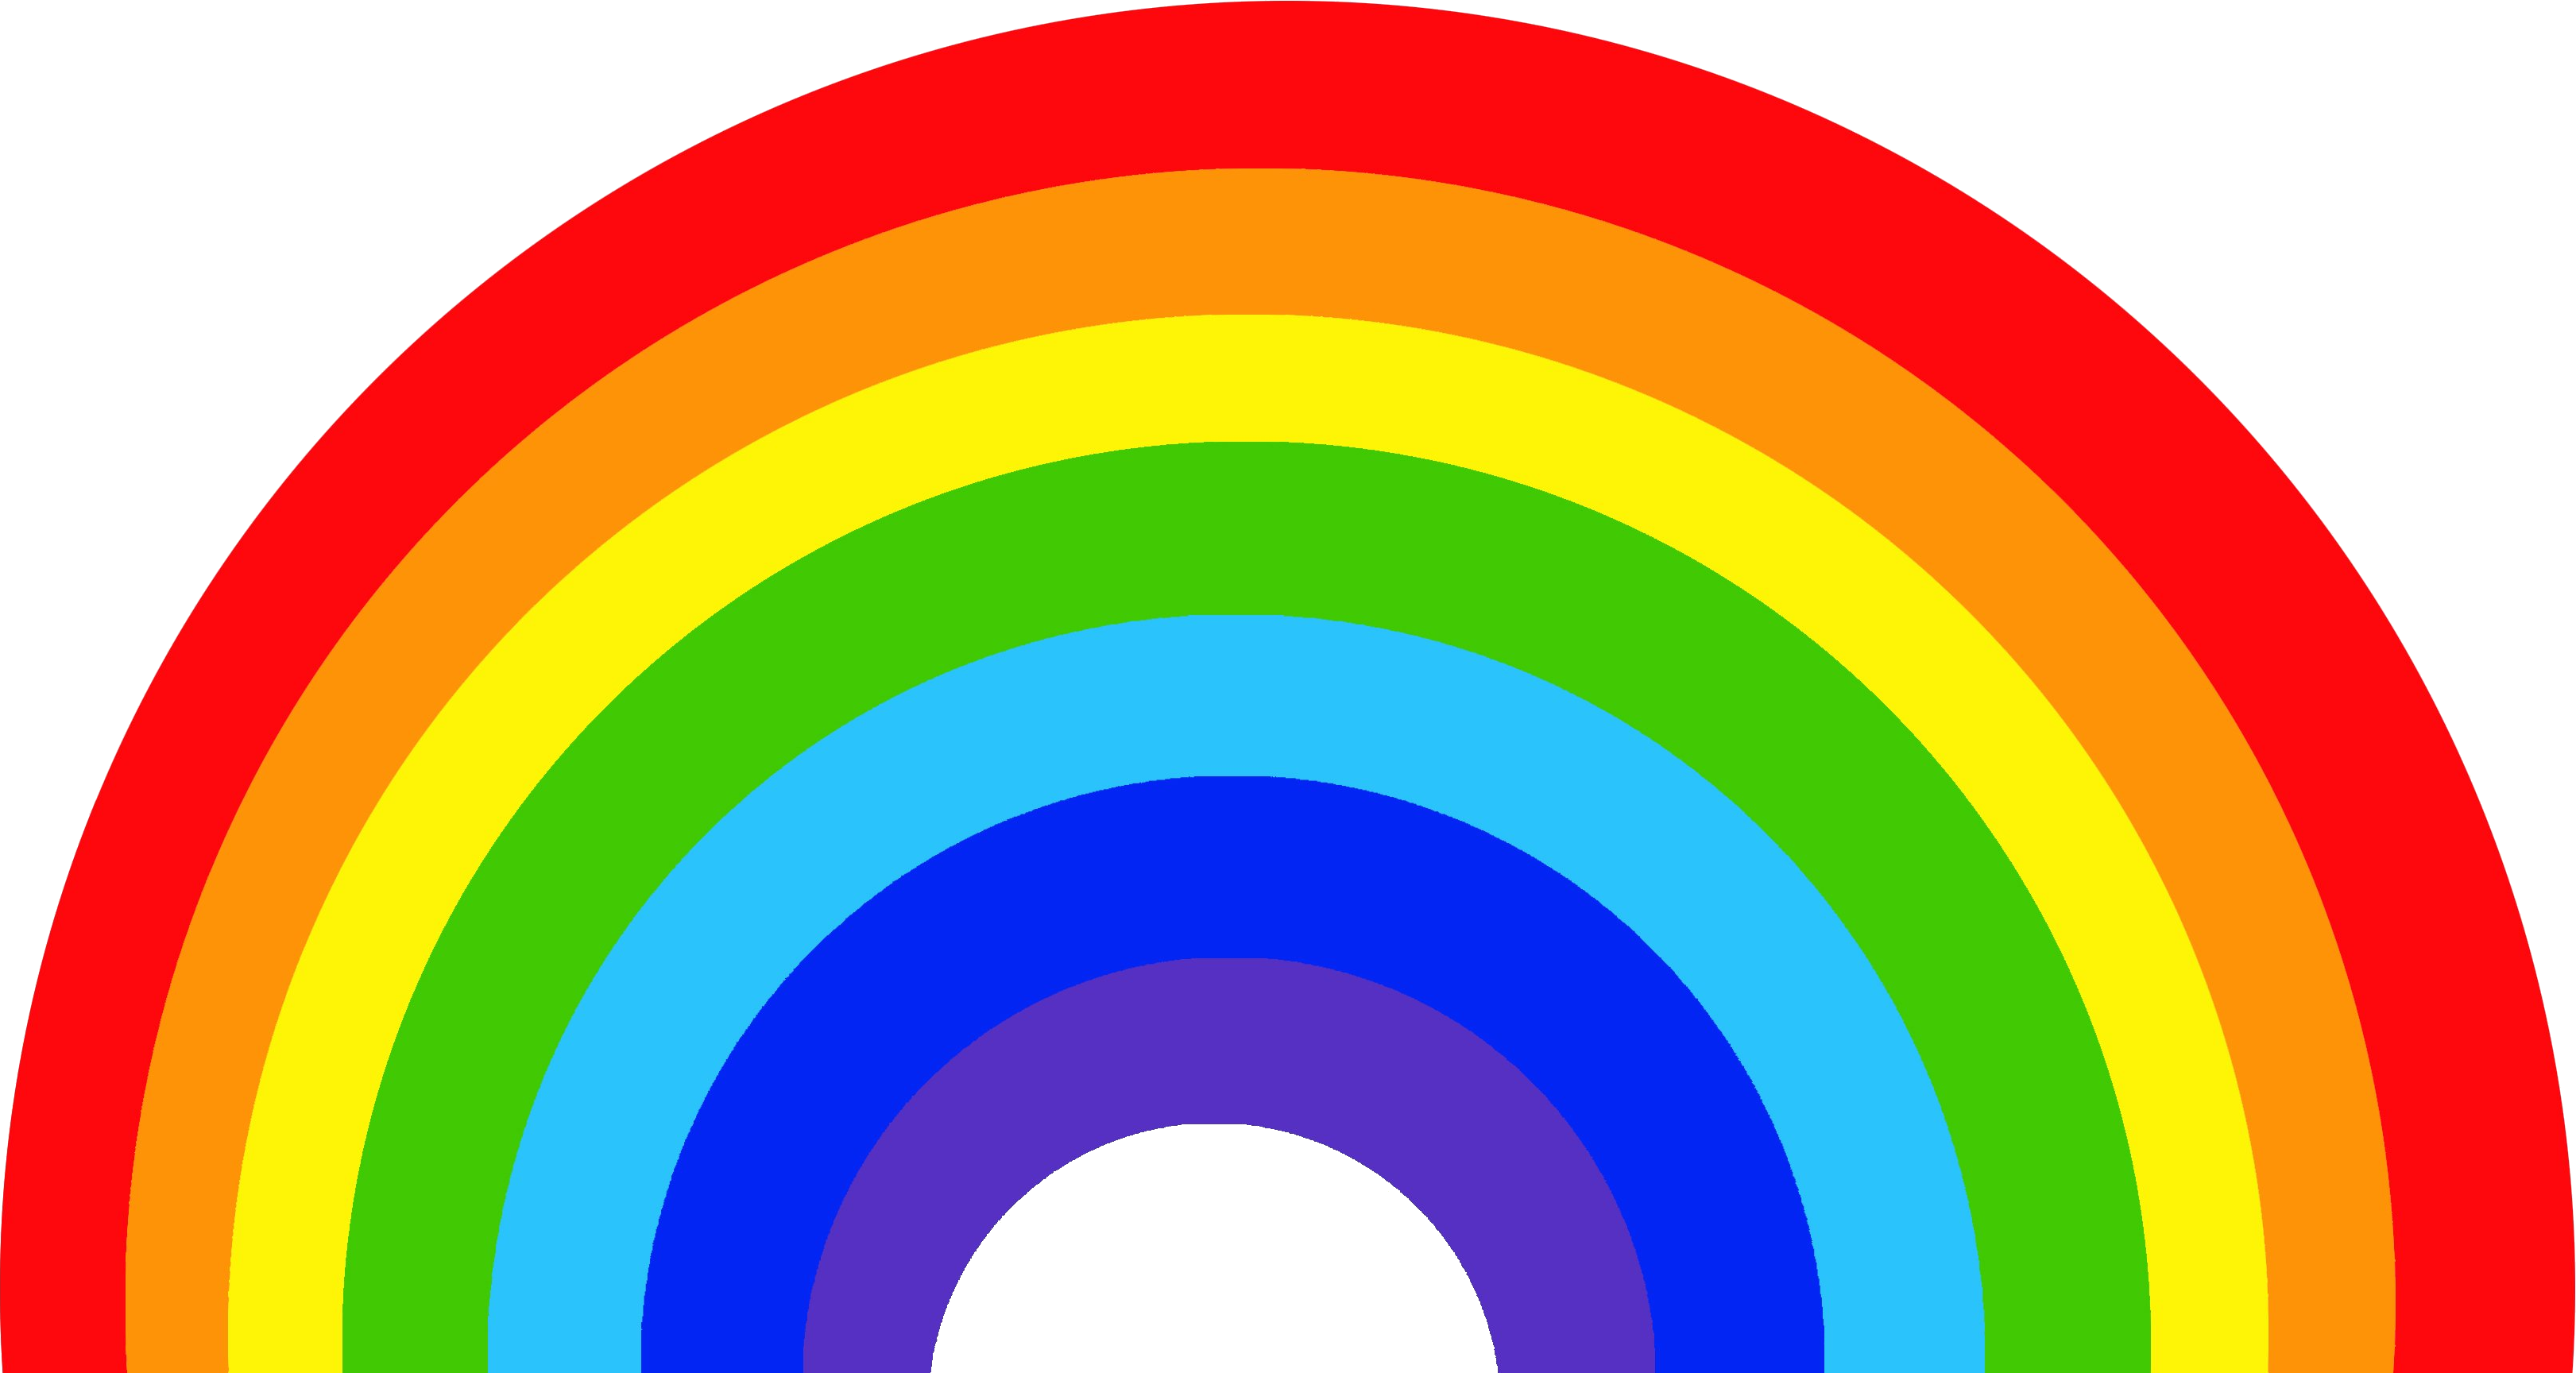 clipart download Download rainbow free png. Drawing rainbows realistic